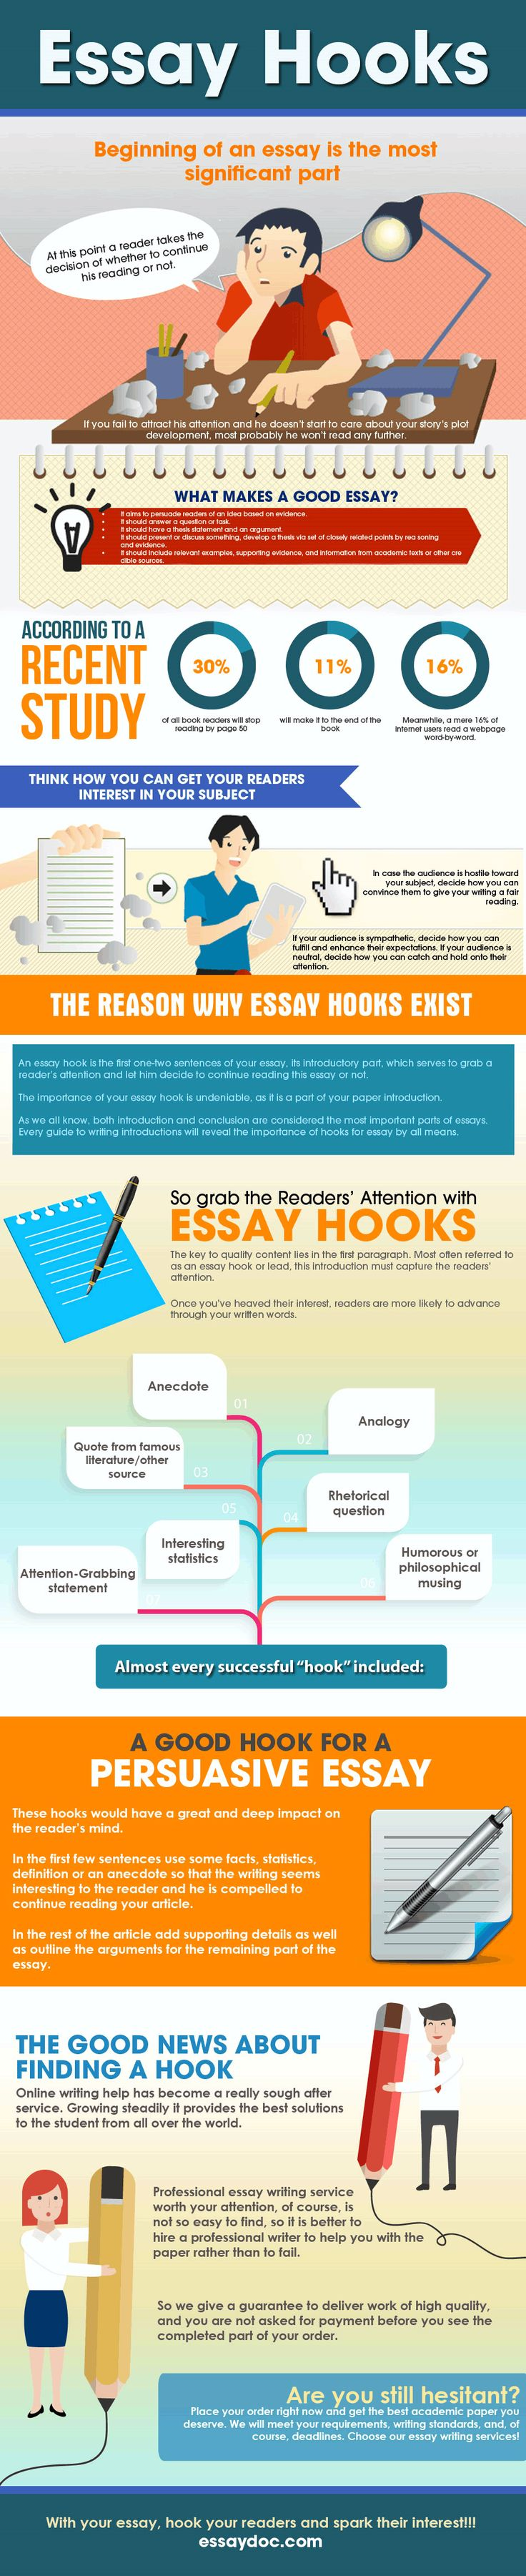 must see essayist pins kurt vonnegut quotes role models and essay hooks infographic